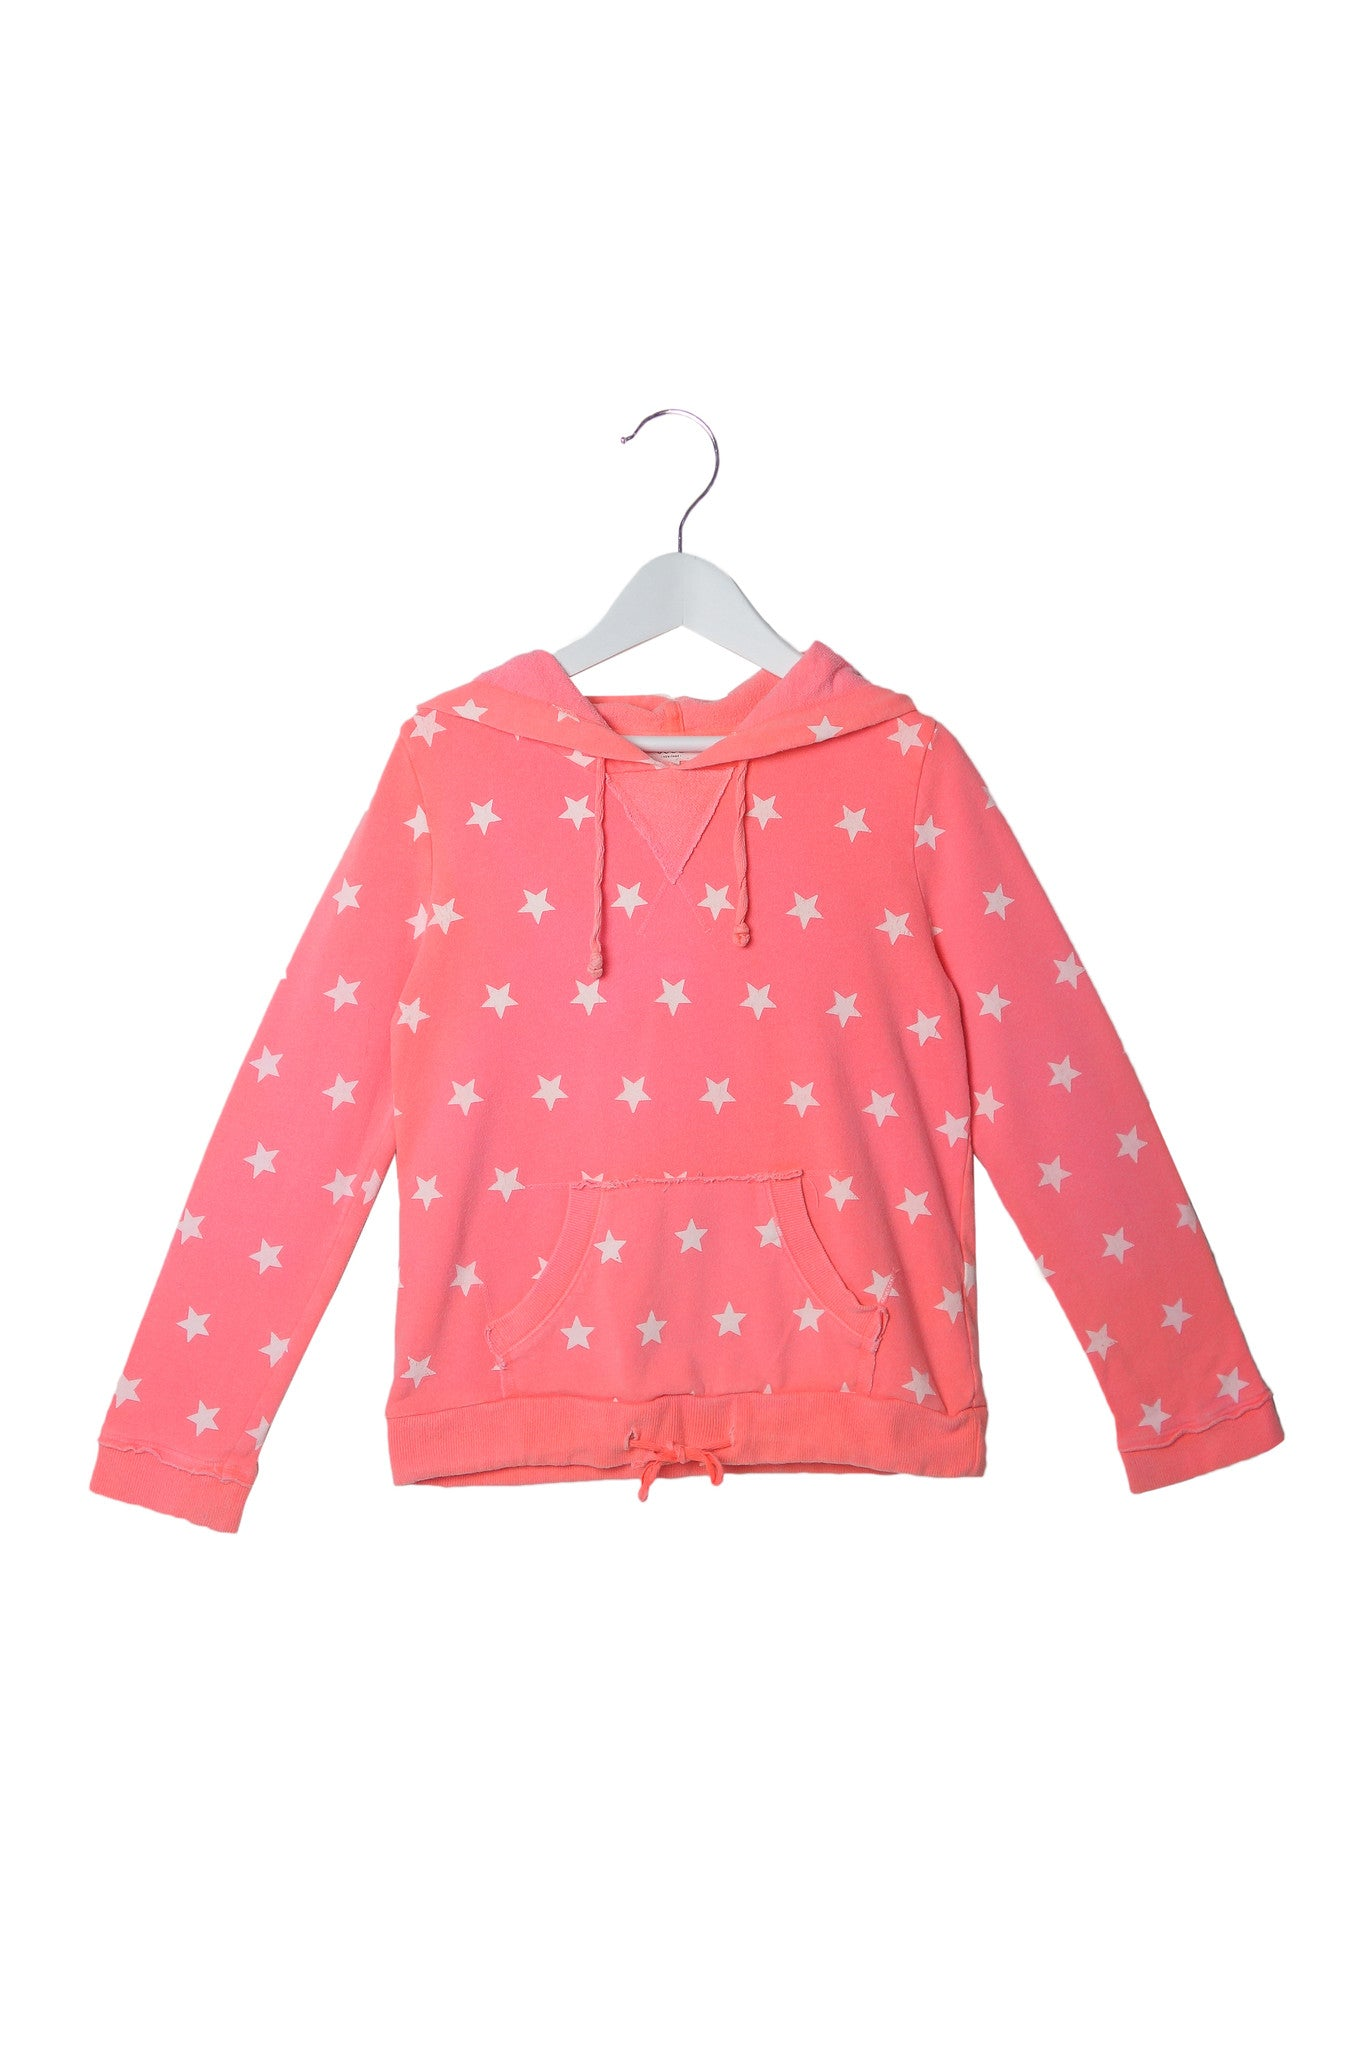 10002566 Seed Kids~Sweatshirt 7-8 at Retykle